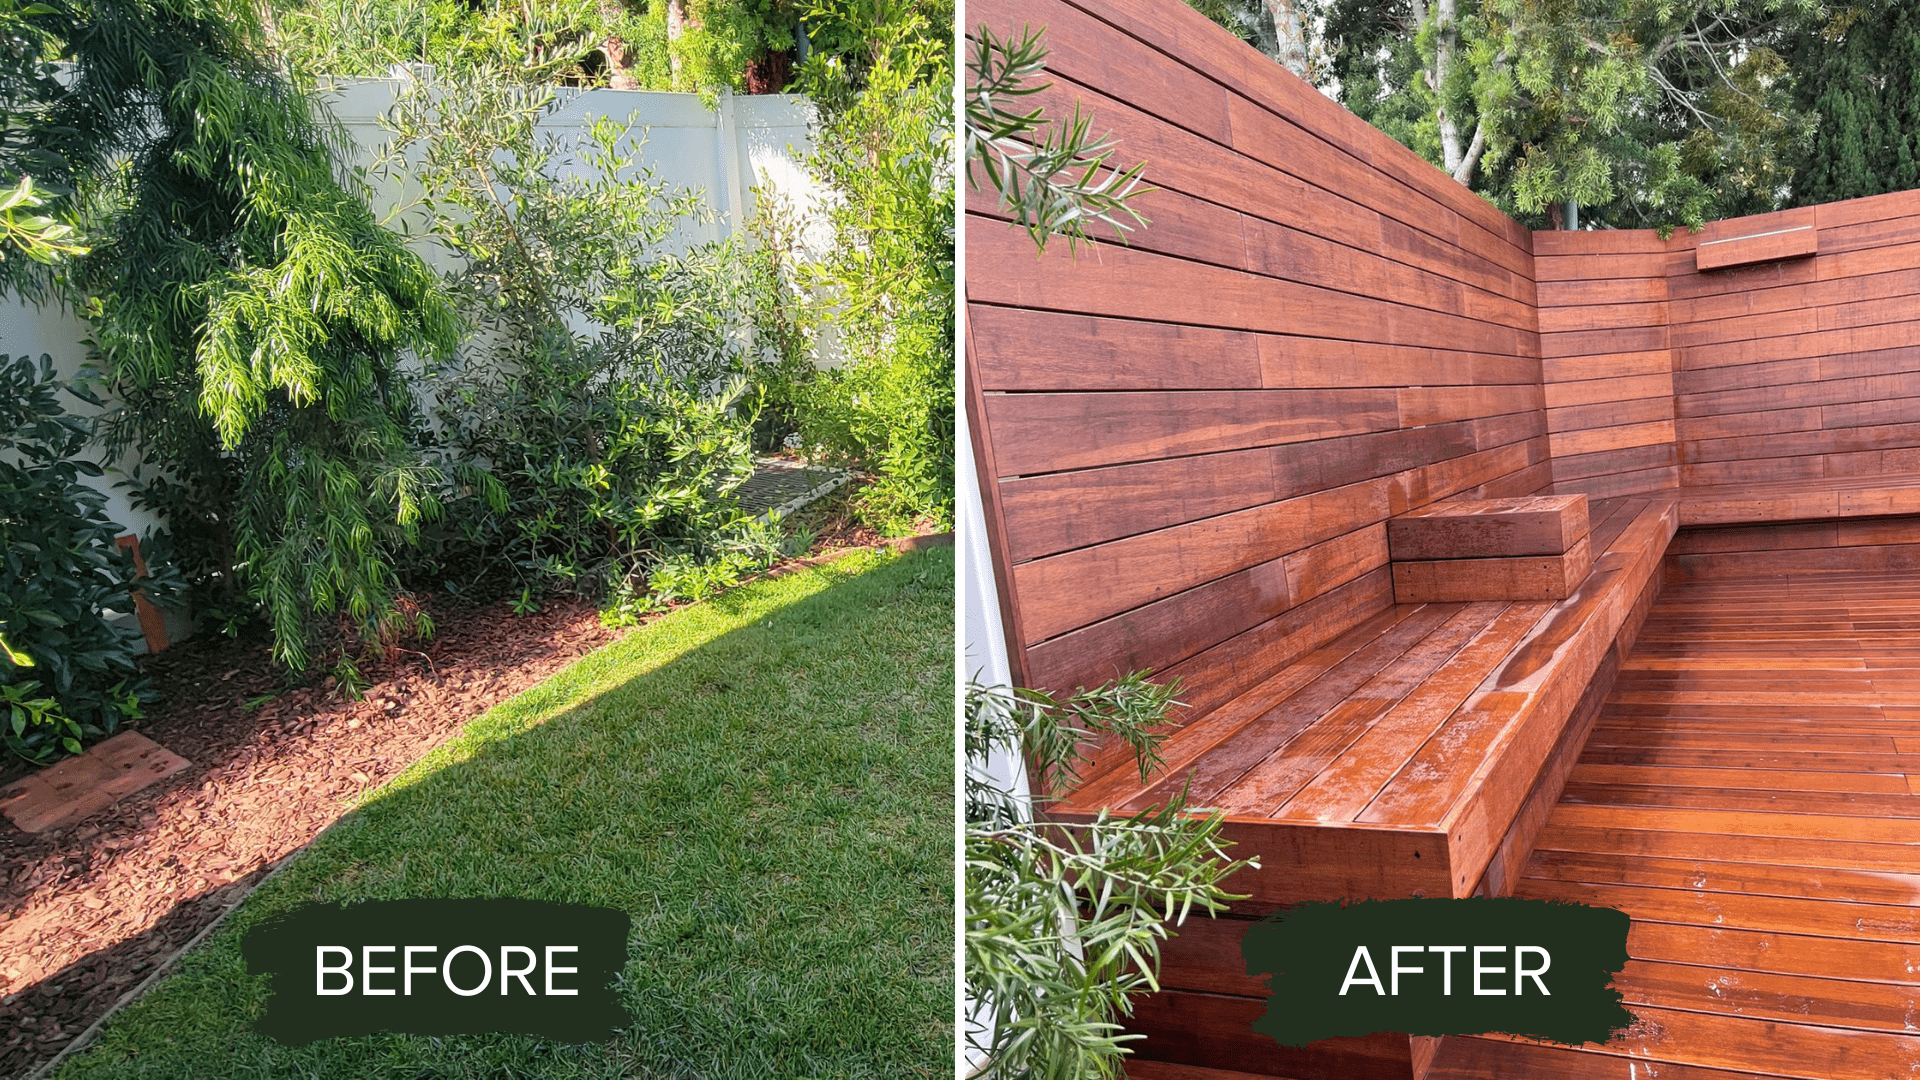 BEFORE AFTER DECK BUILDING